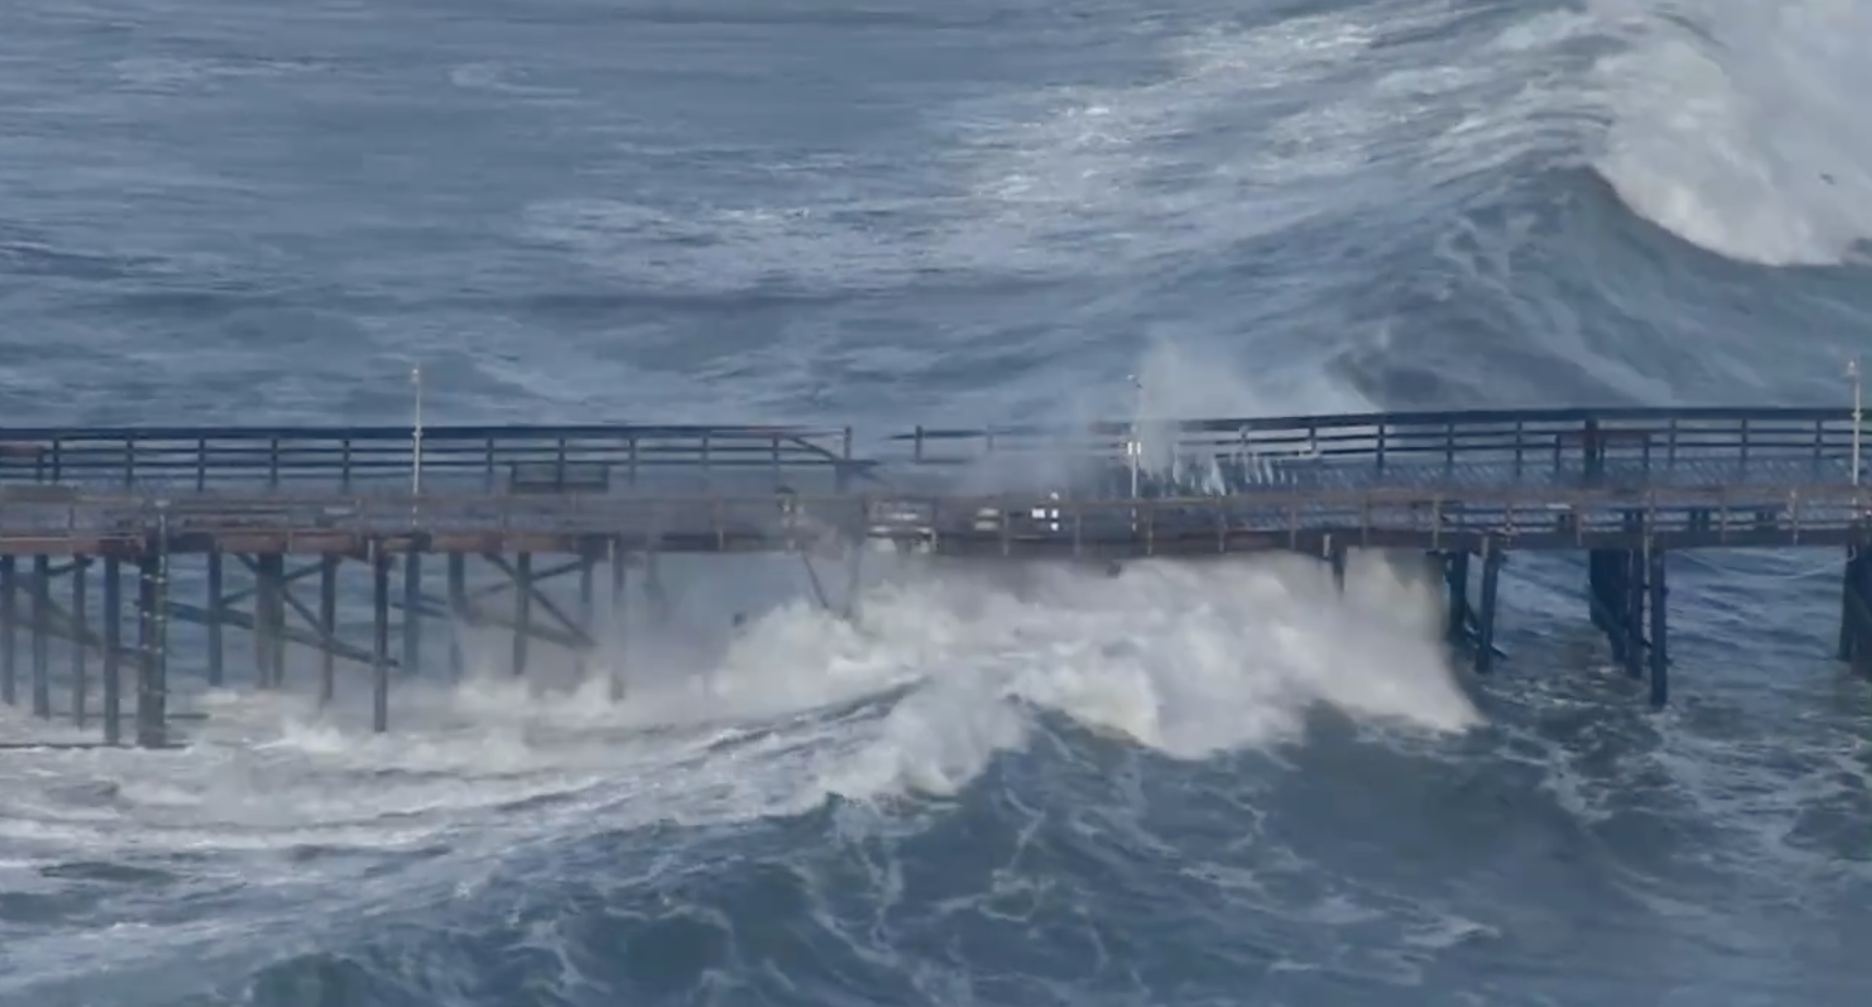 A California Pier Is the First Victim of El Niño